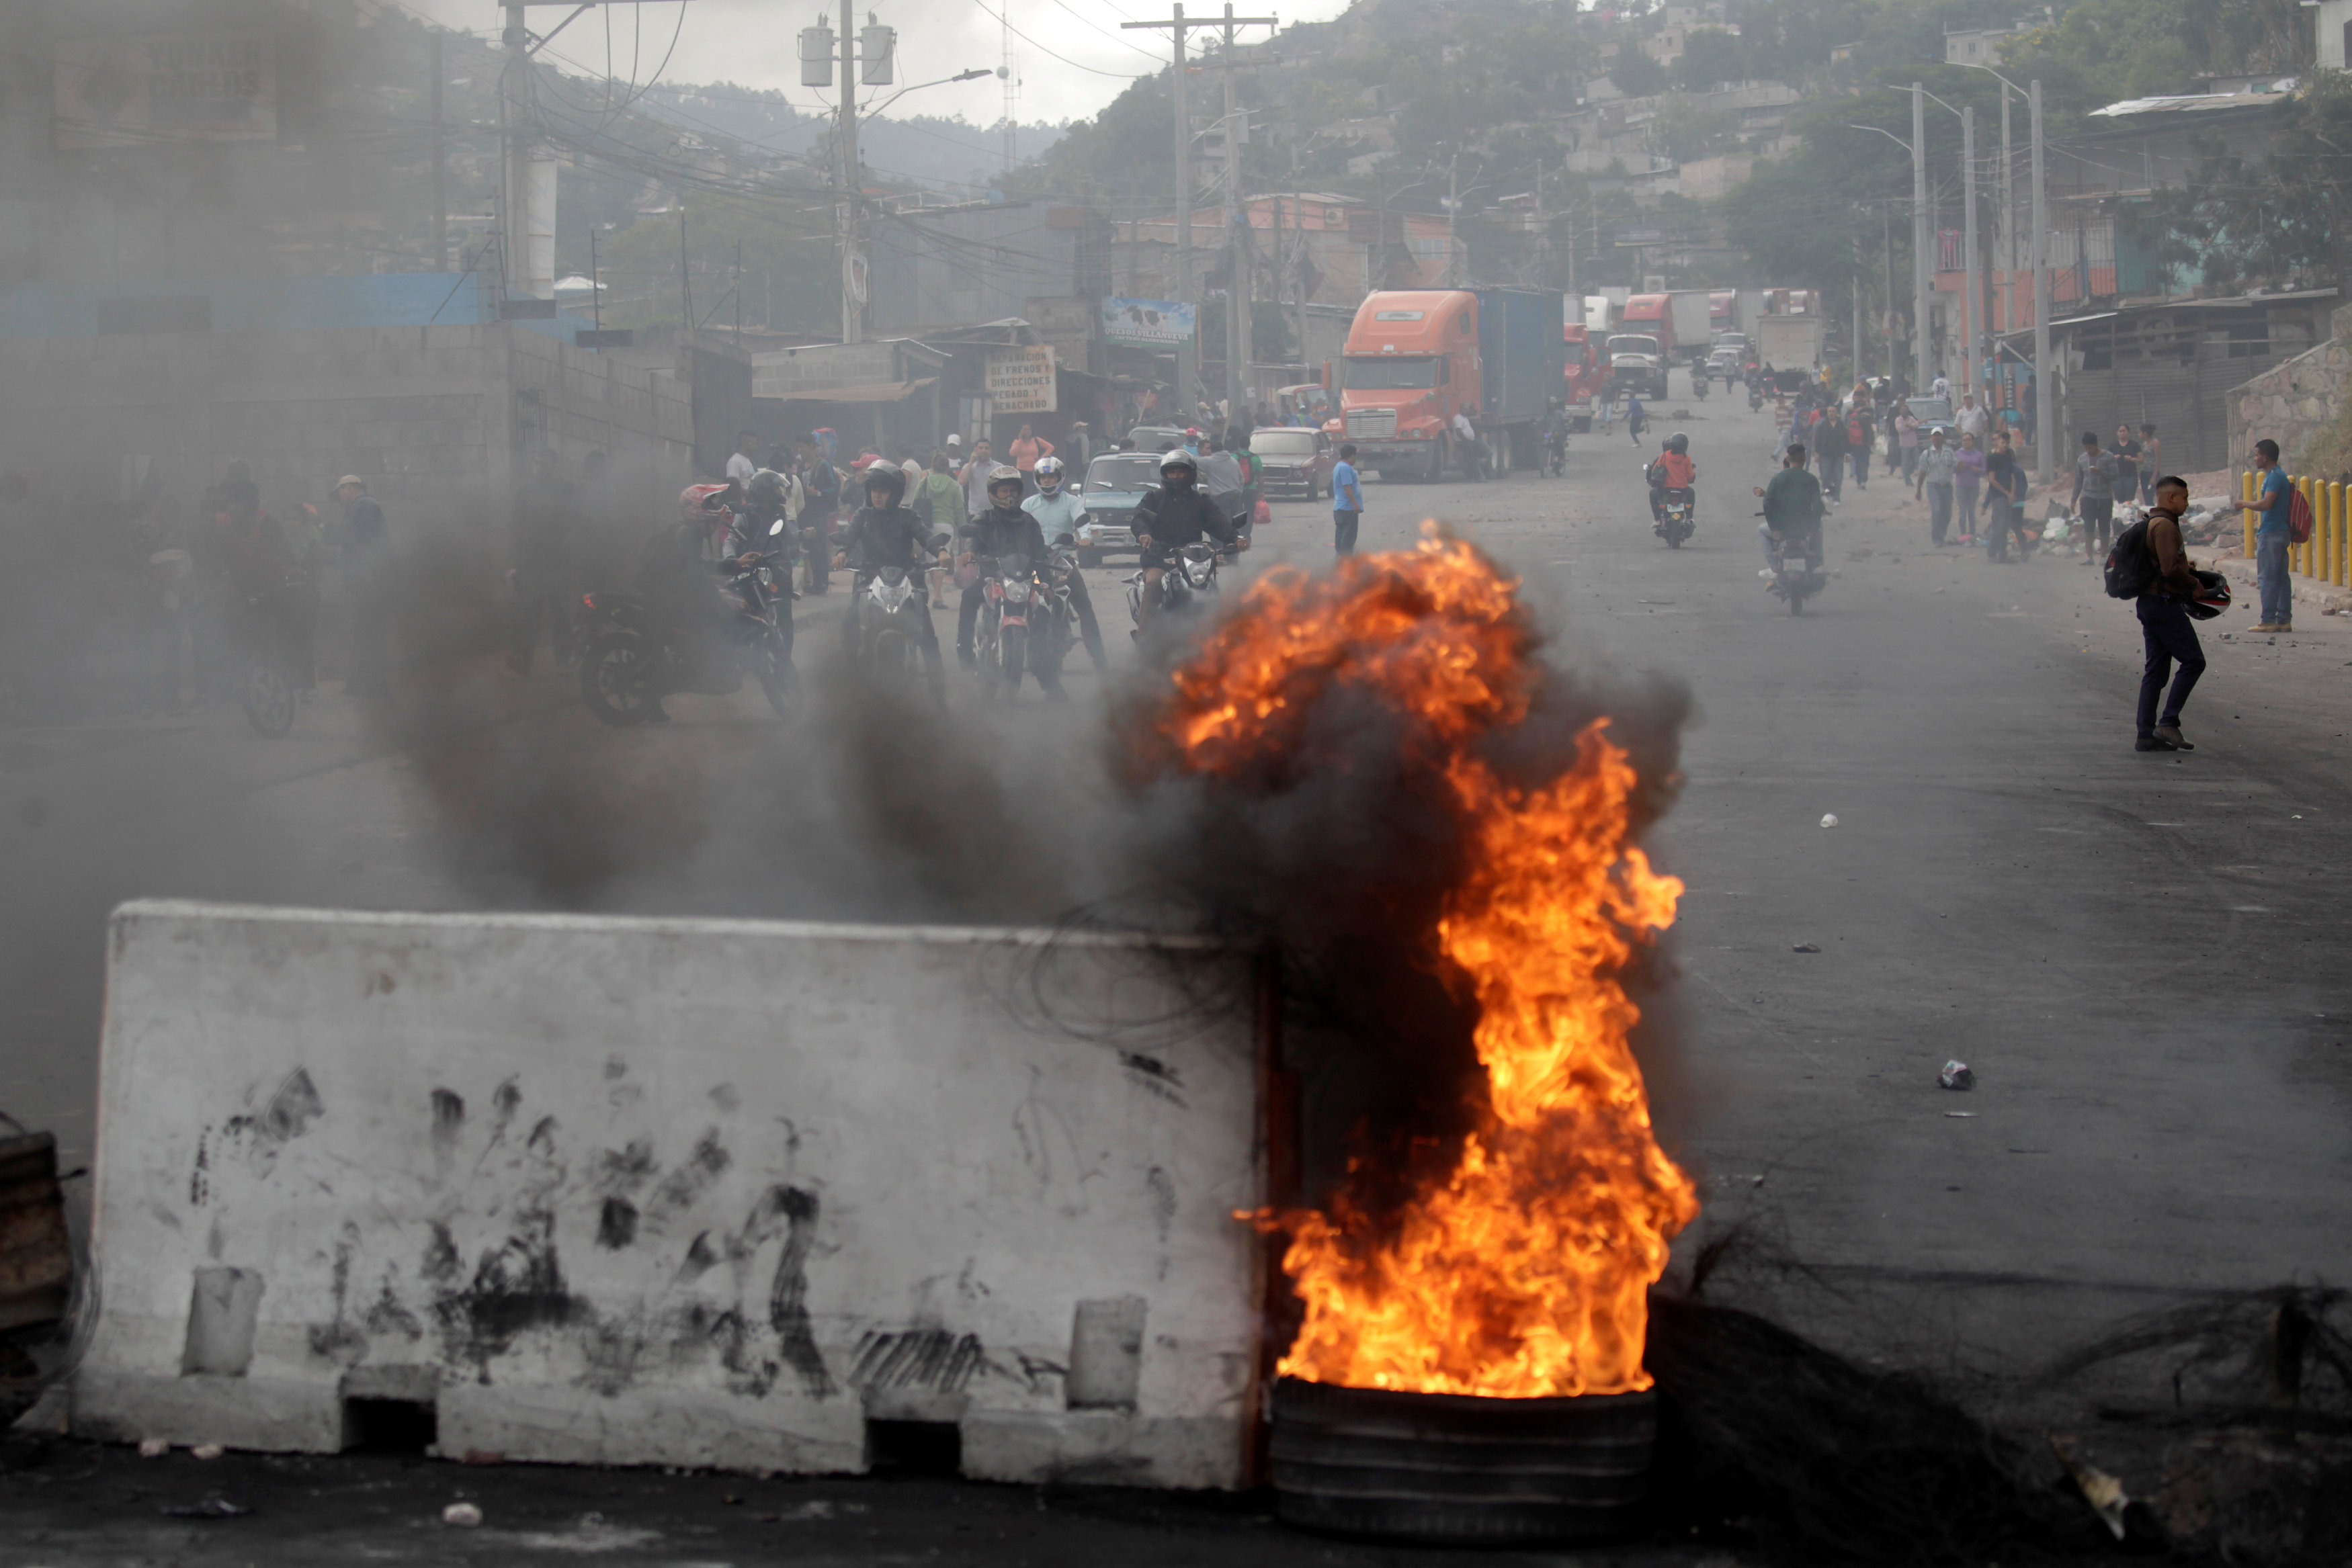 Honduras awaits presidential vote count as army enforces curfew